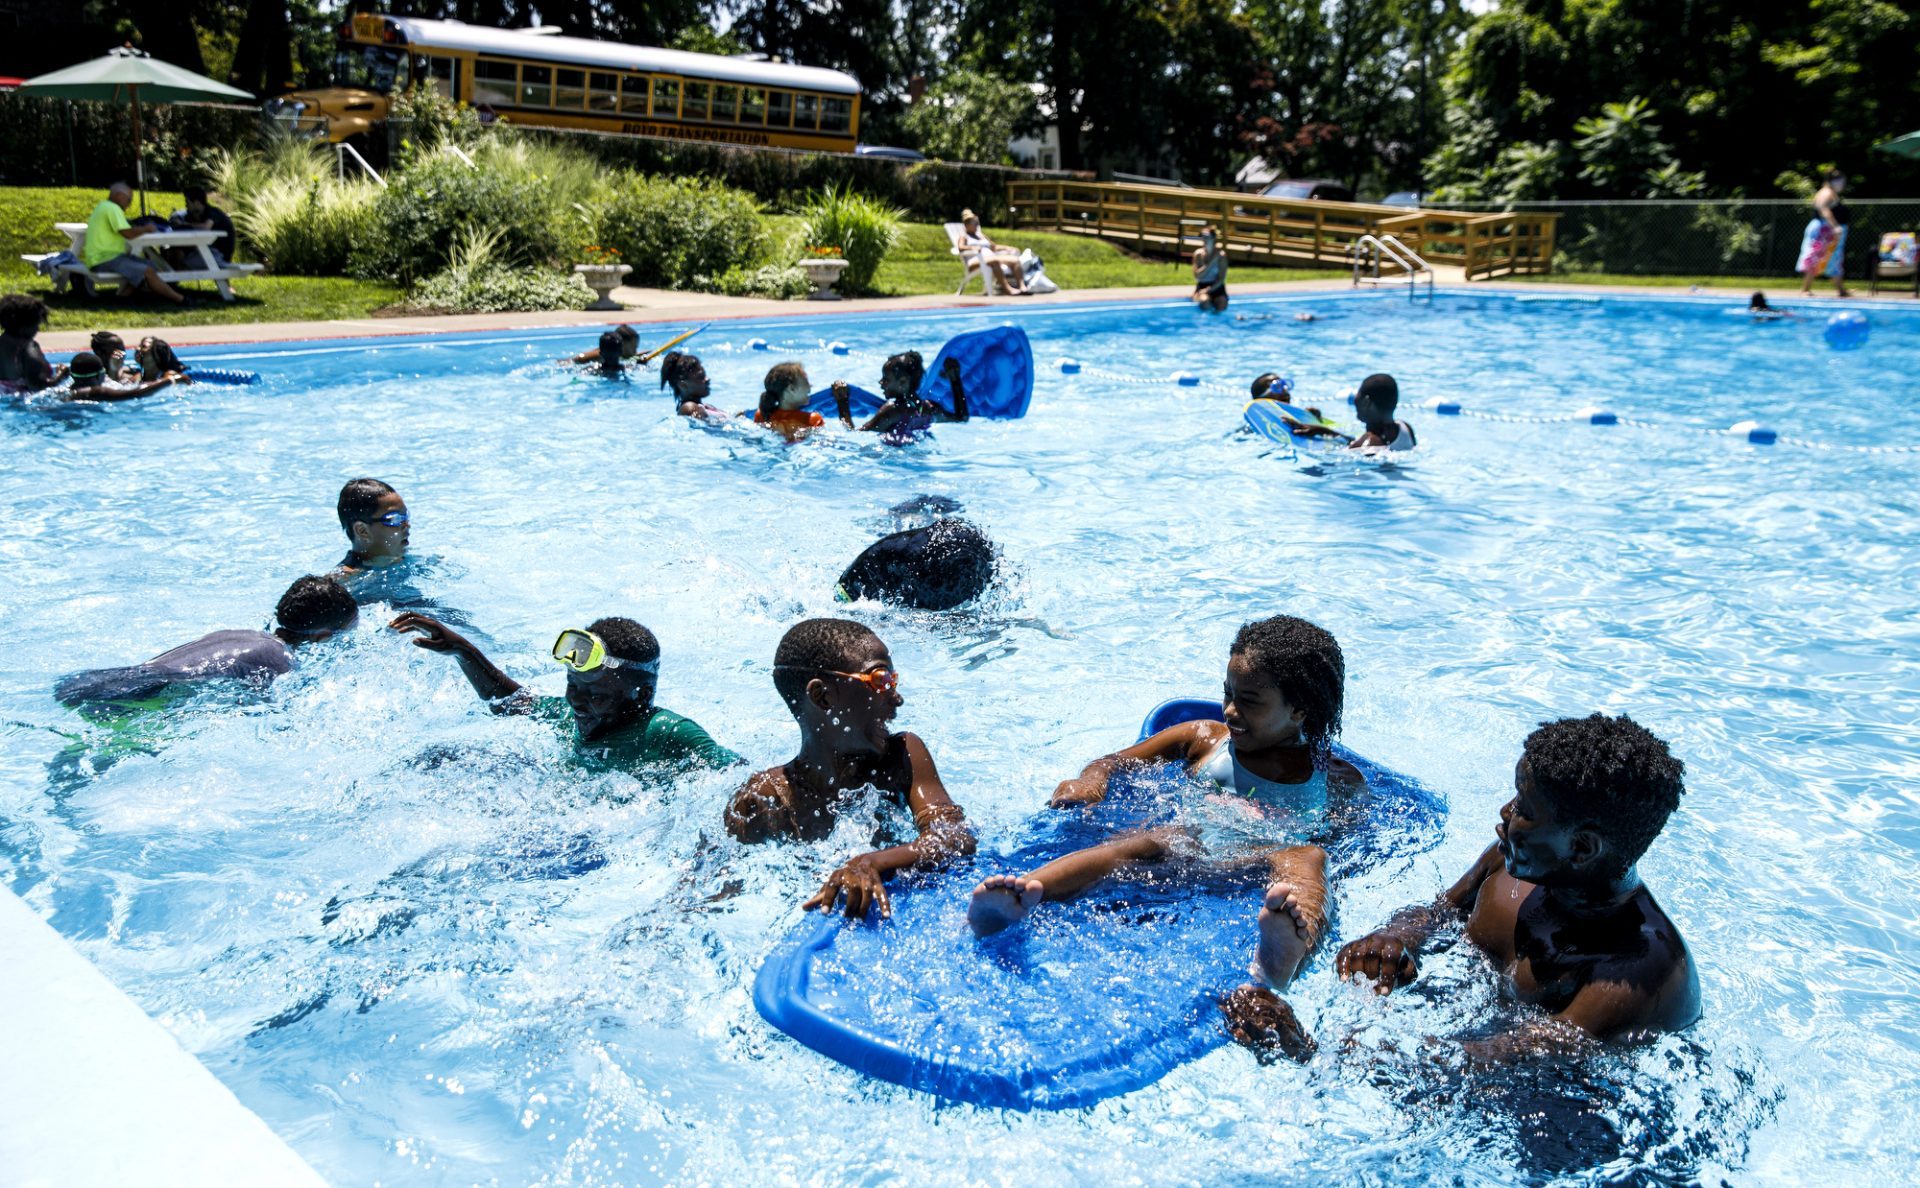 Students from Harrisburg's Rowland Academy swim in the pool. The swimming pool at the lieutentant governor's residence at Fort Indiantown Gap is open to groups in a program being overseen by Gisele Fetterman, second lady of Pennsylvania, to teach water safety and offer exposure to swimming. July 24, 2019.